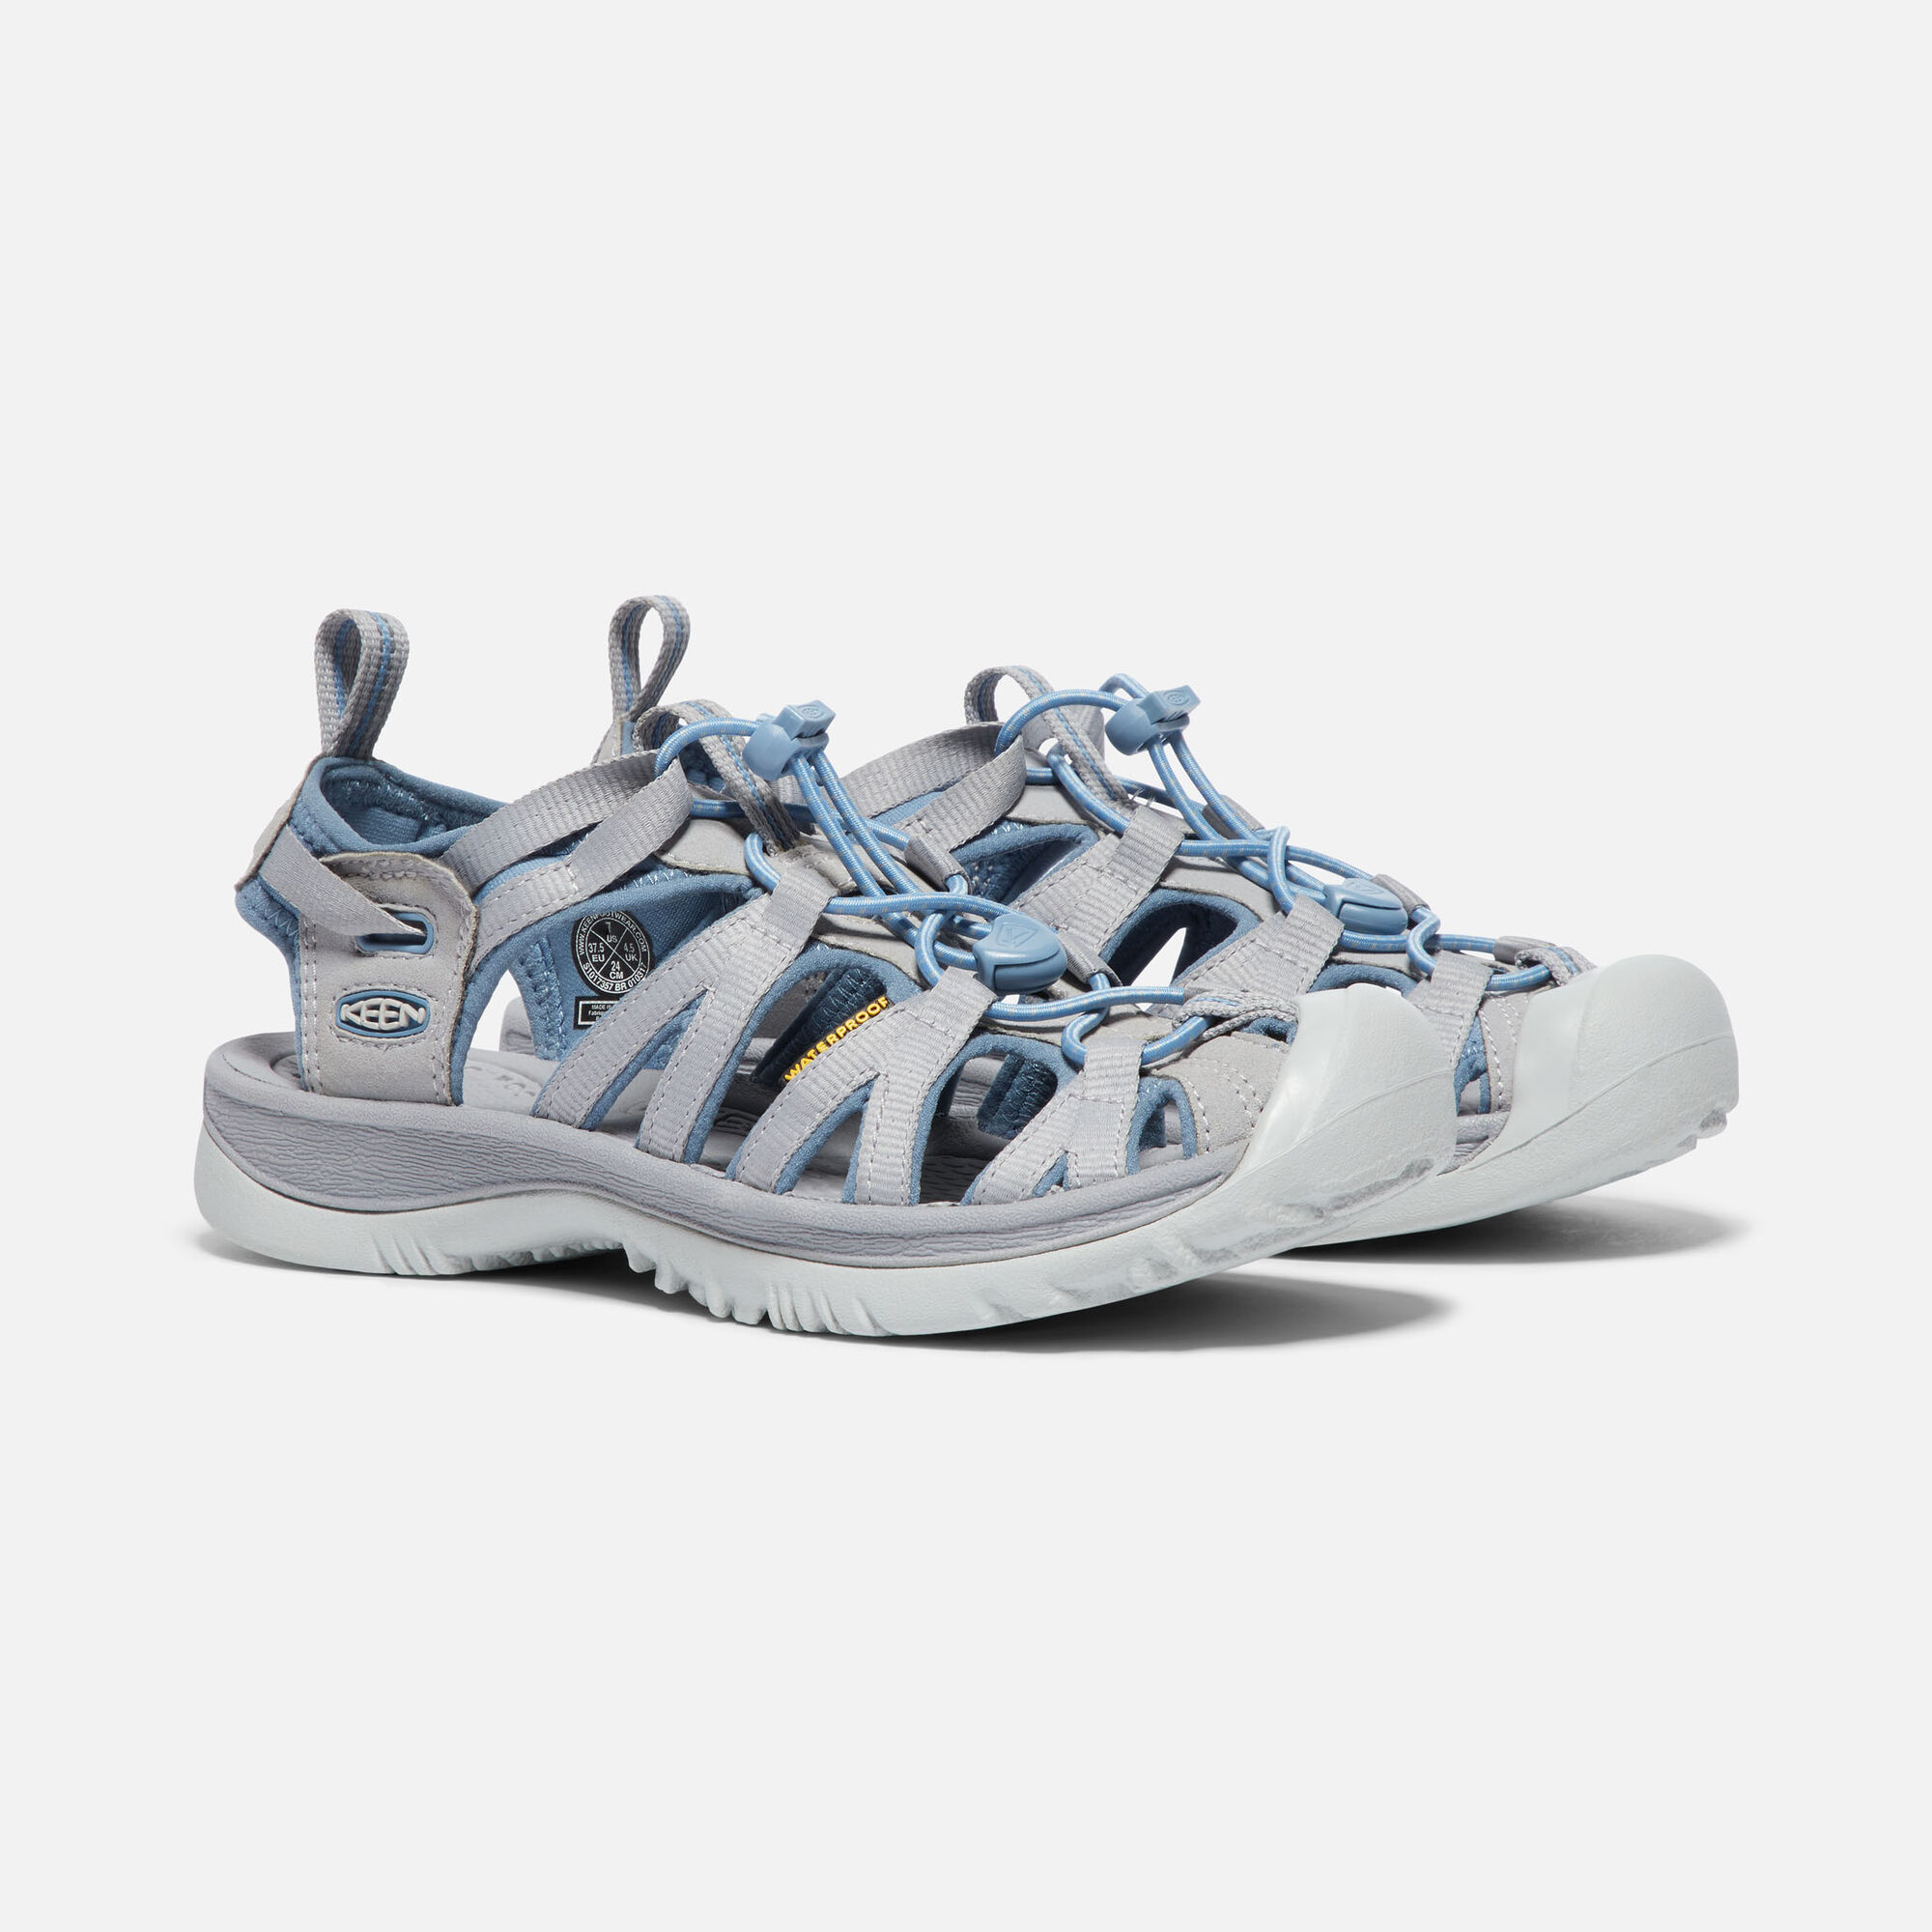 ed280c8f55ea Women s Whisper in BLUE SHADOW ALLOY - small view.